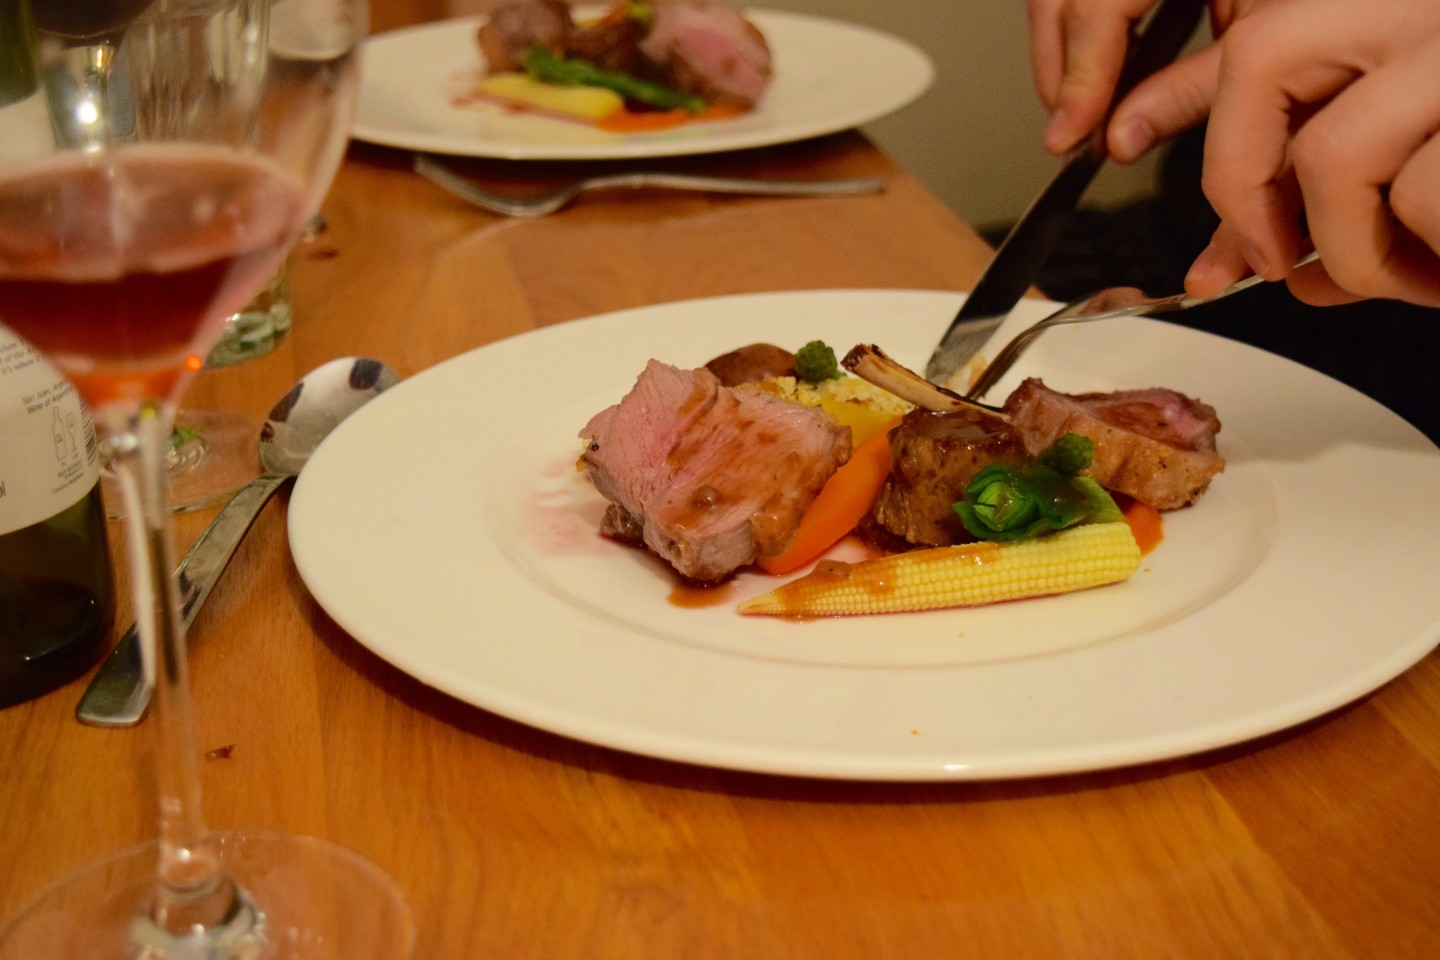 Our Evening With a Private Chef From La Belle Assiette